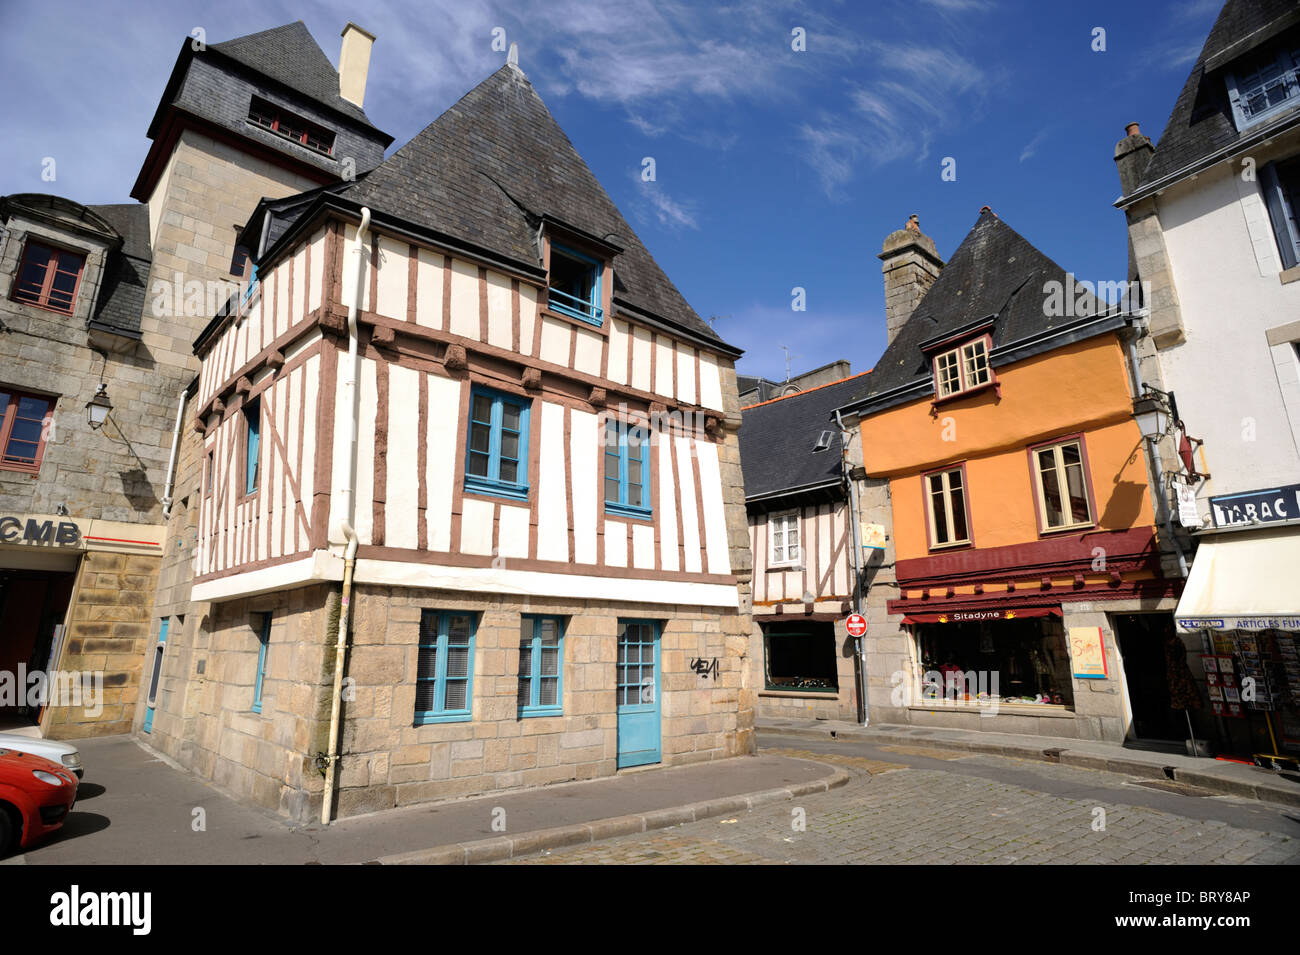 france, brittany (bretagne), finistere, quimper, half timbered houses - Stock Image